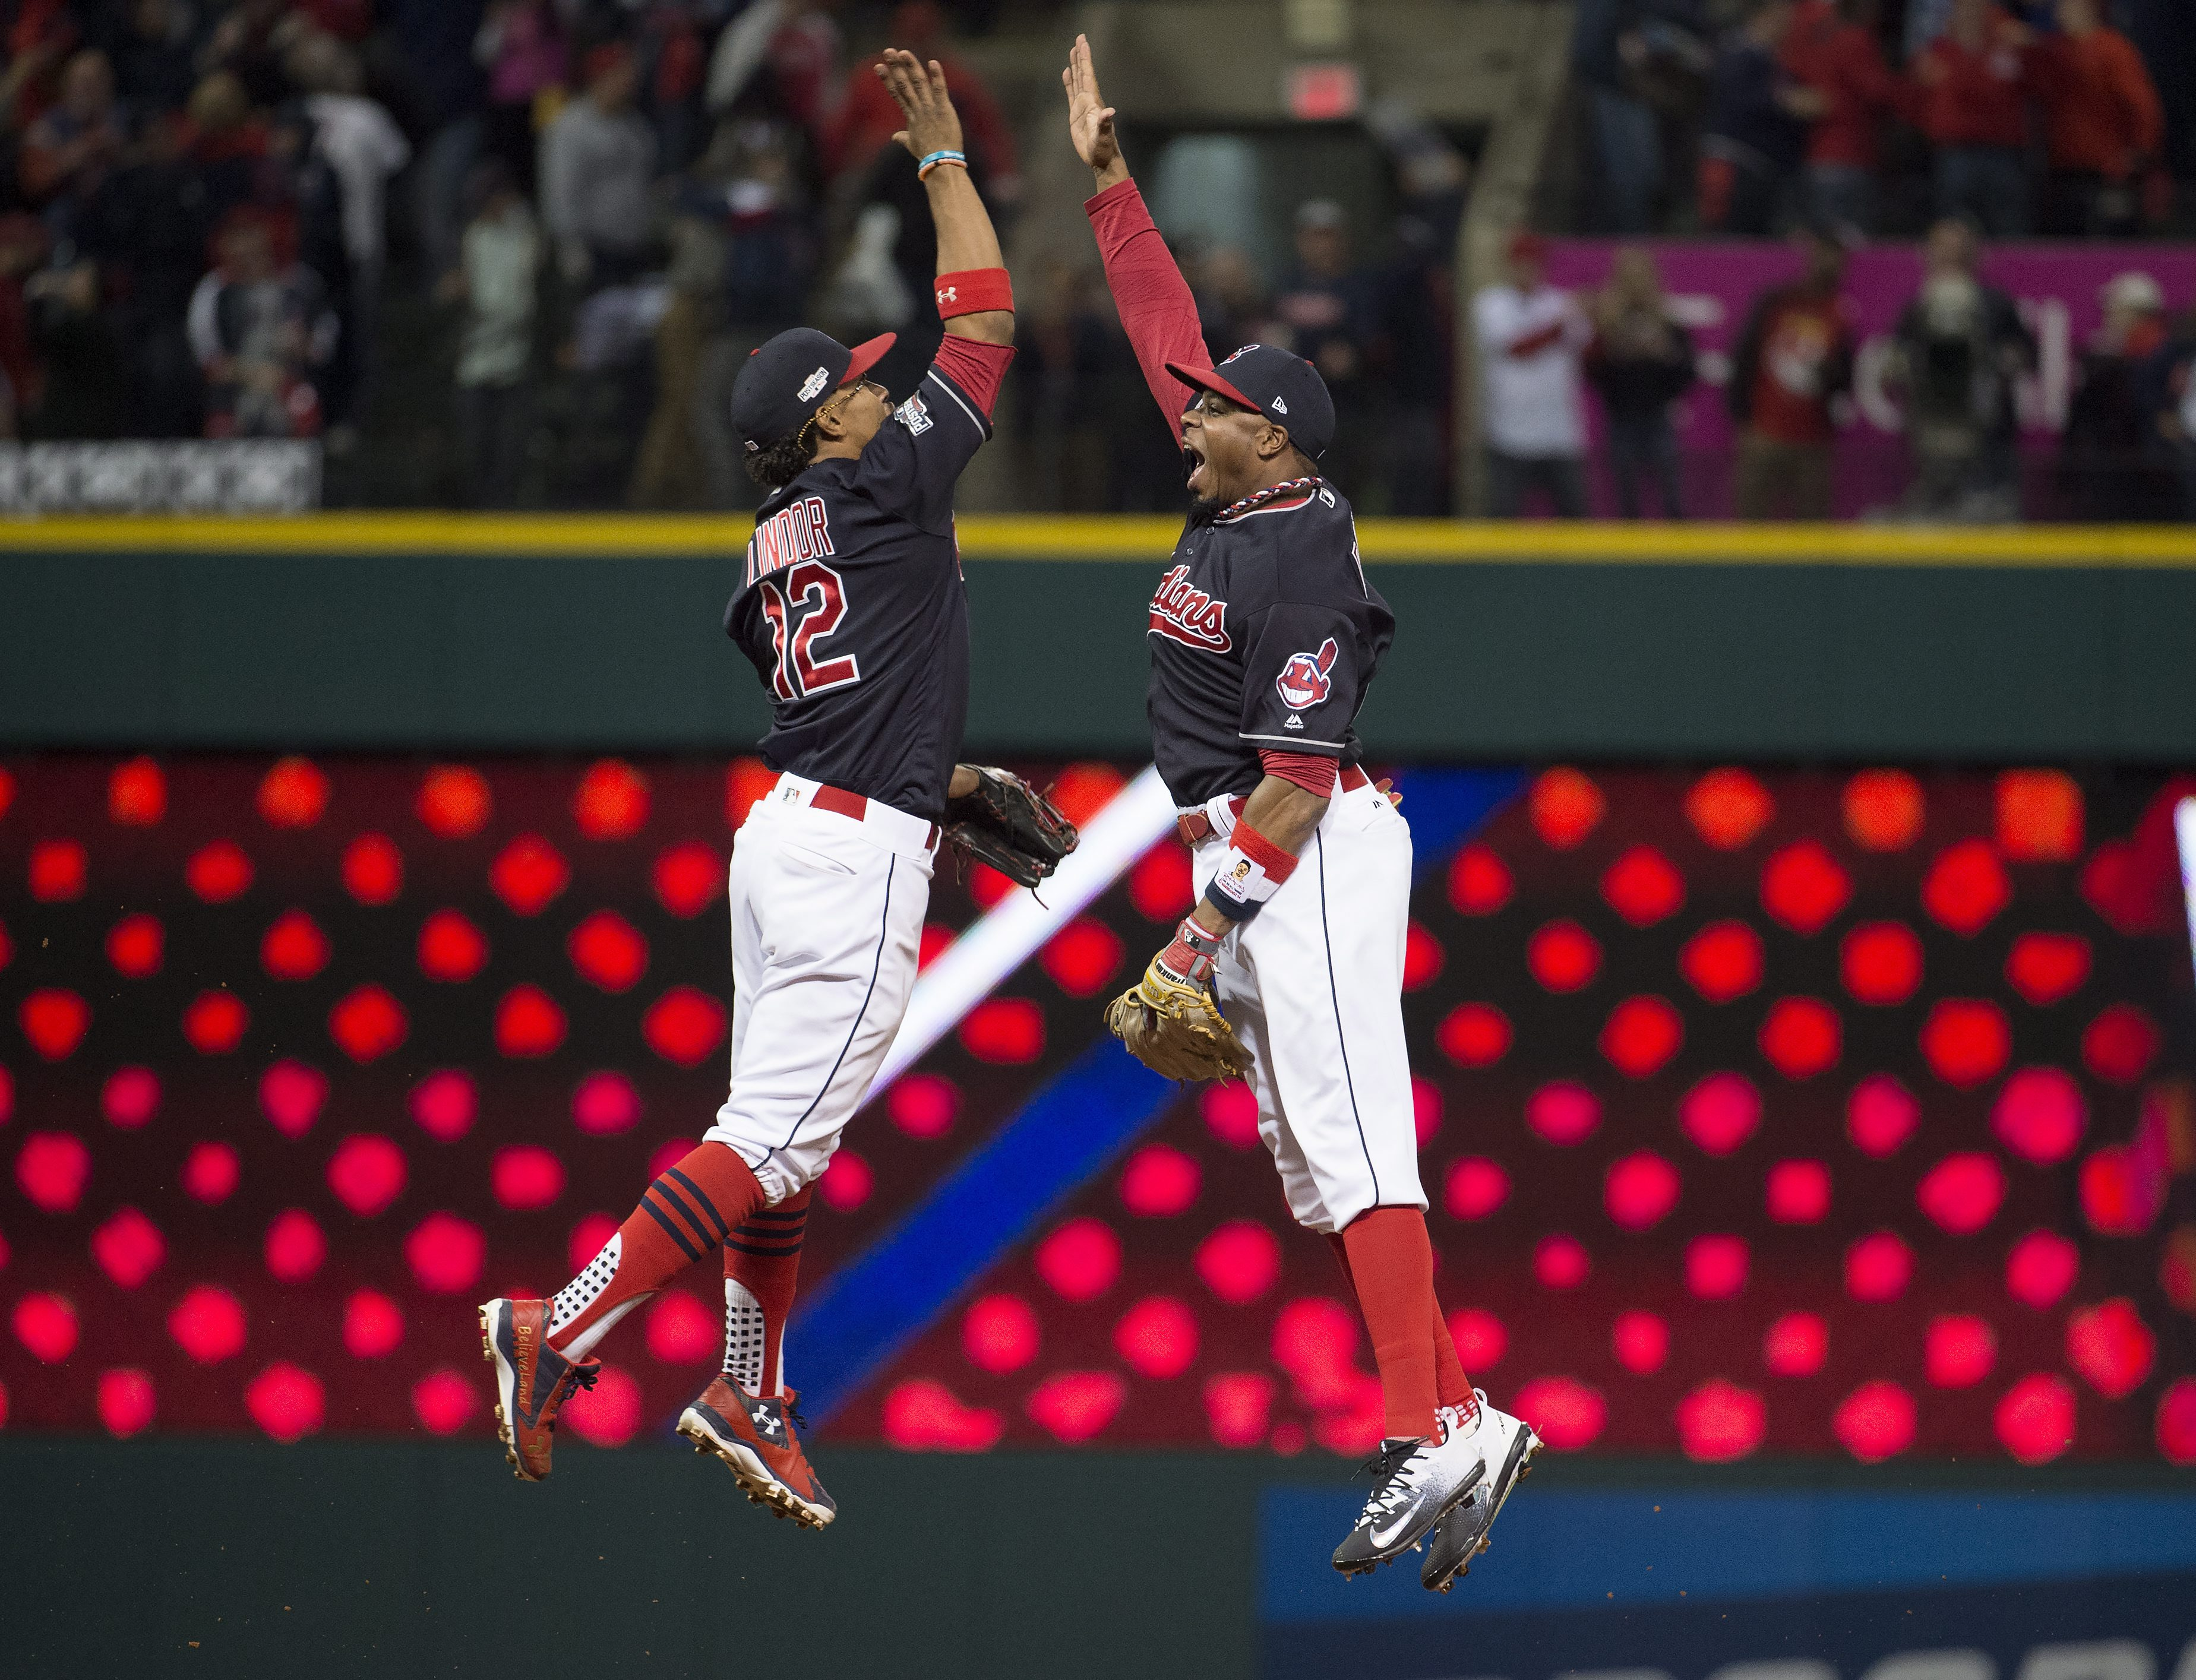 Cleveland Indians' Francisco Lindor, left, and Rajai Davis celebrate the Indians' 2-0 victory over the Toronto Blue Jays in Game 1 of the baseball American League Championship Series, Friday, Oct. 14, 2016, in Cleveland. (Nathan Denette/The Canadian Press